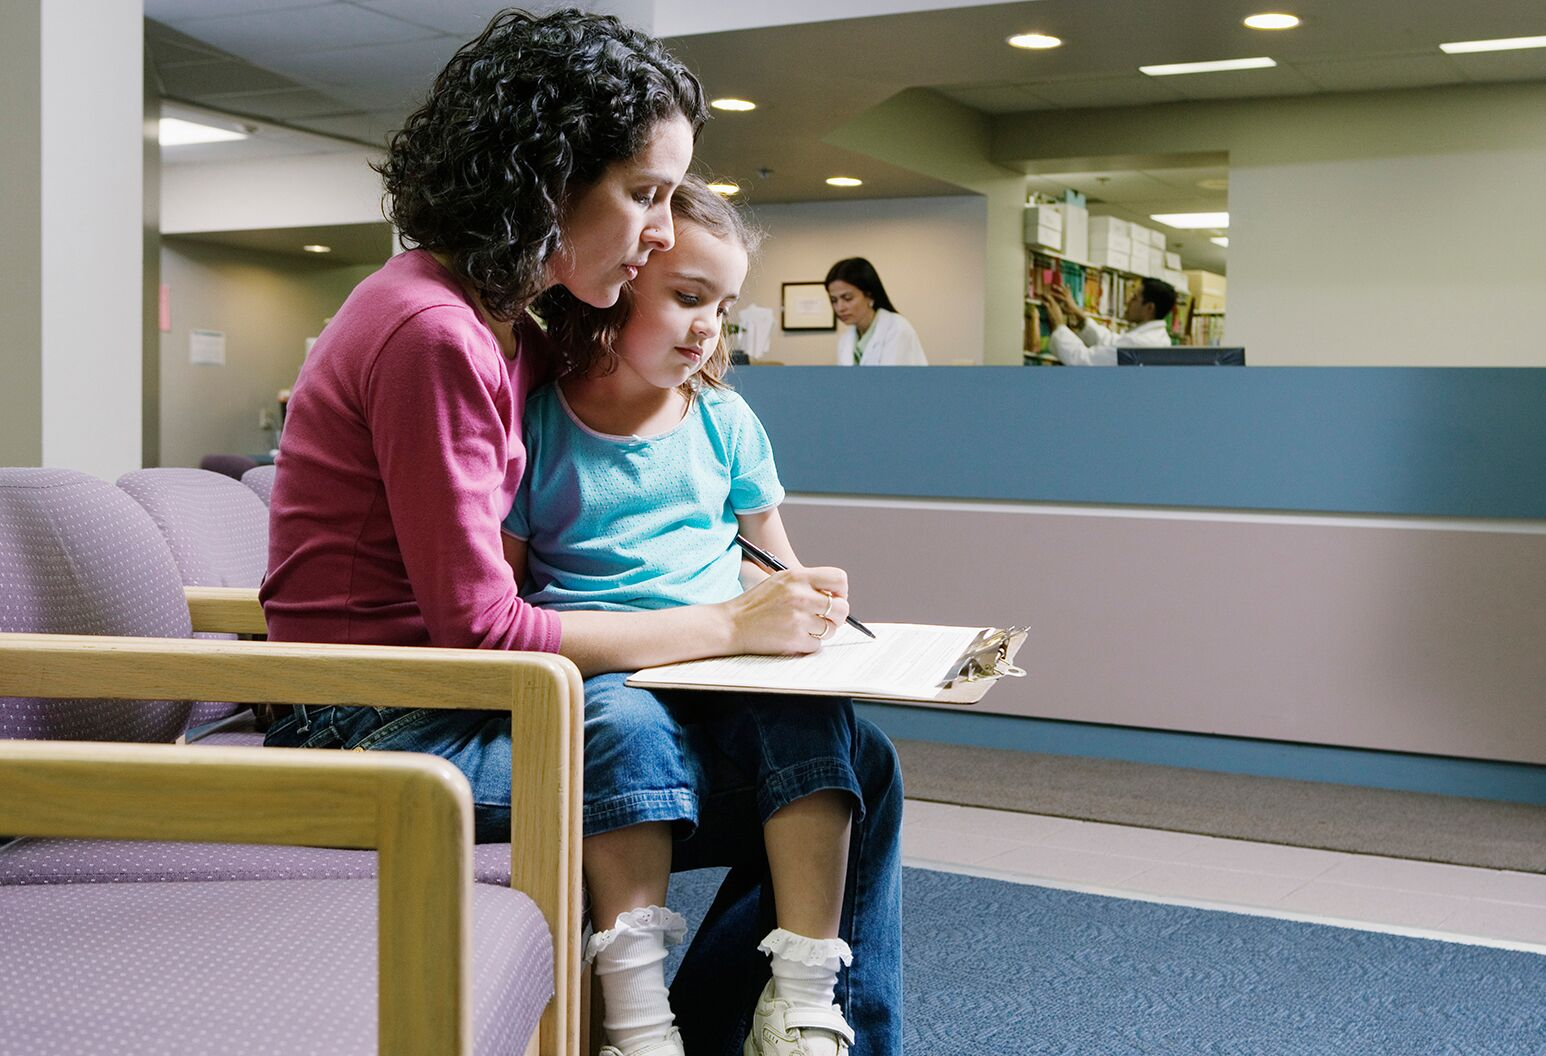 A woman holds a young girl on her lap while filling out forms.